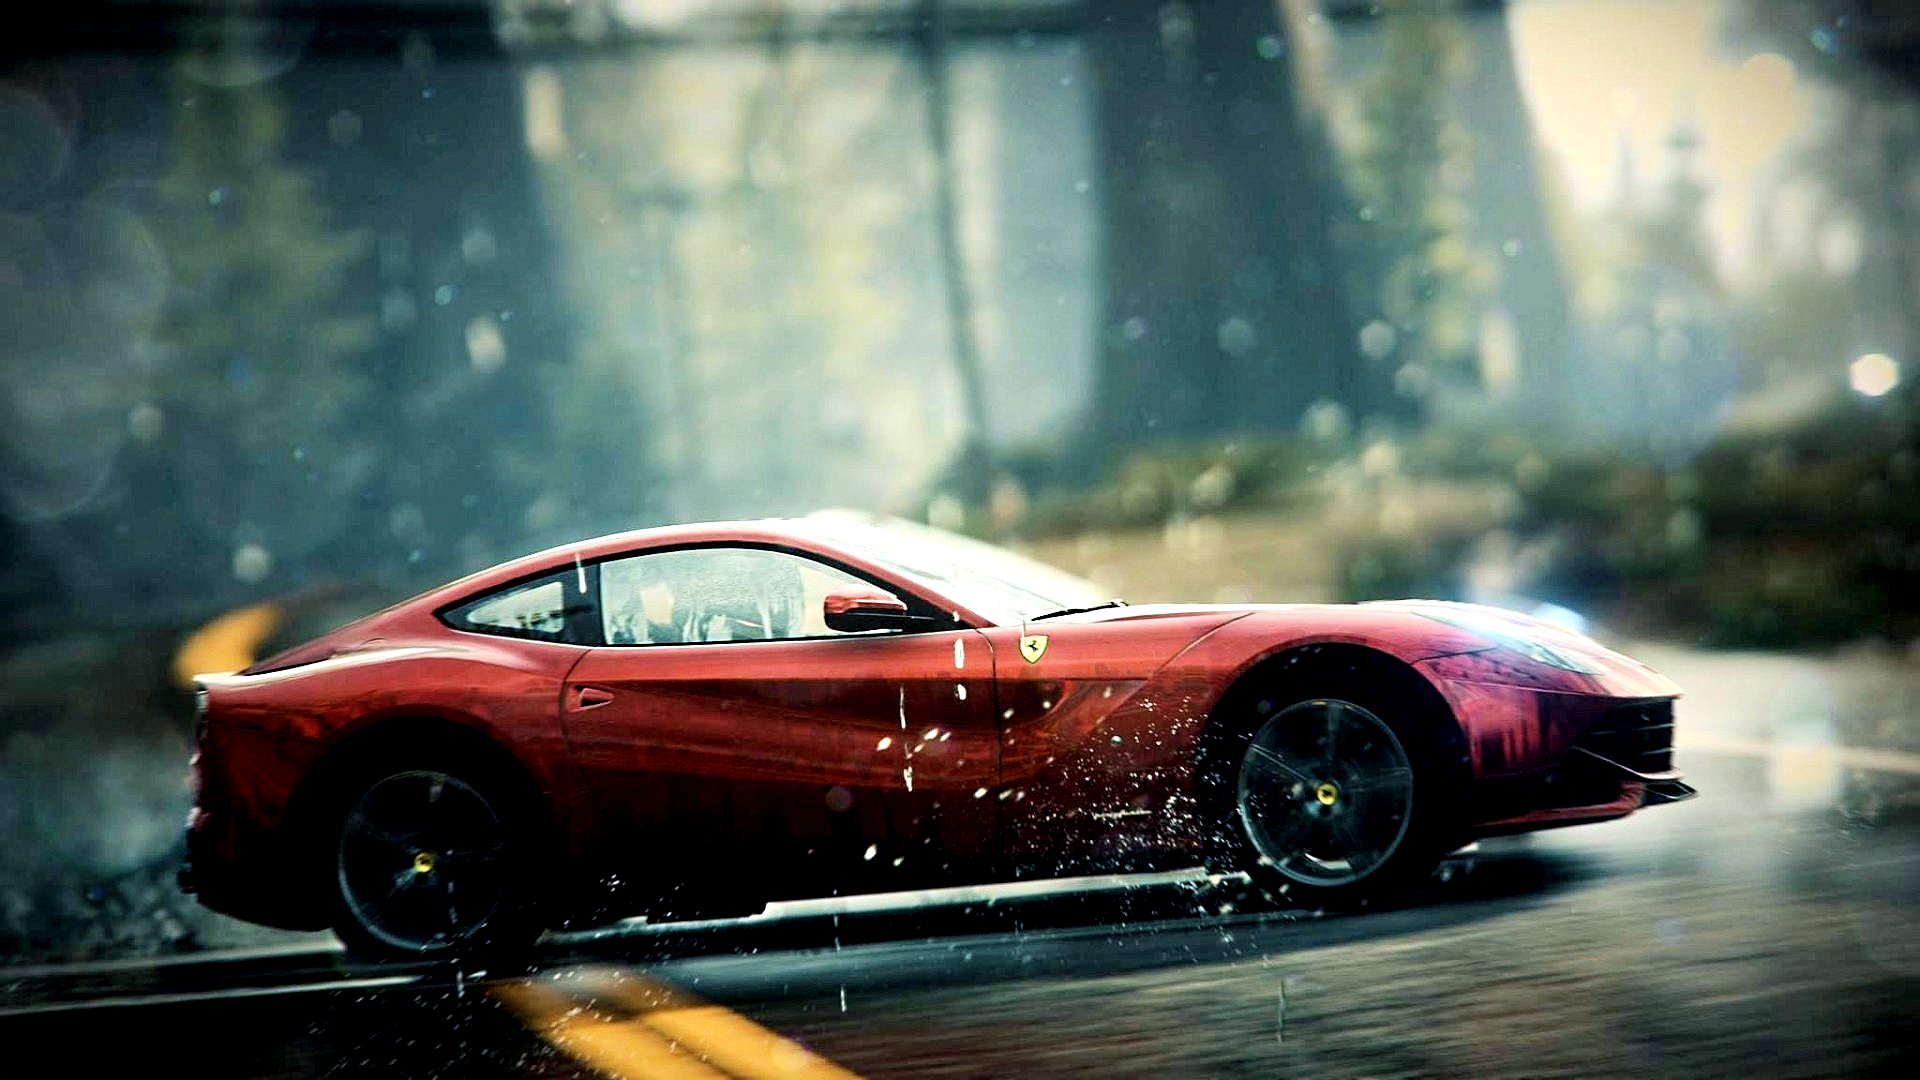 Need For Speed Rivals Hd Wallpaper Background Image 1920x1080